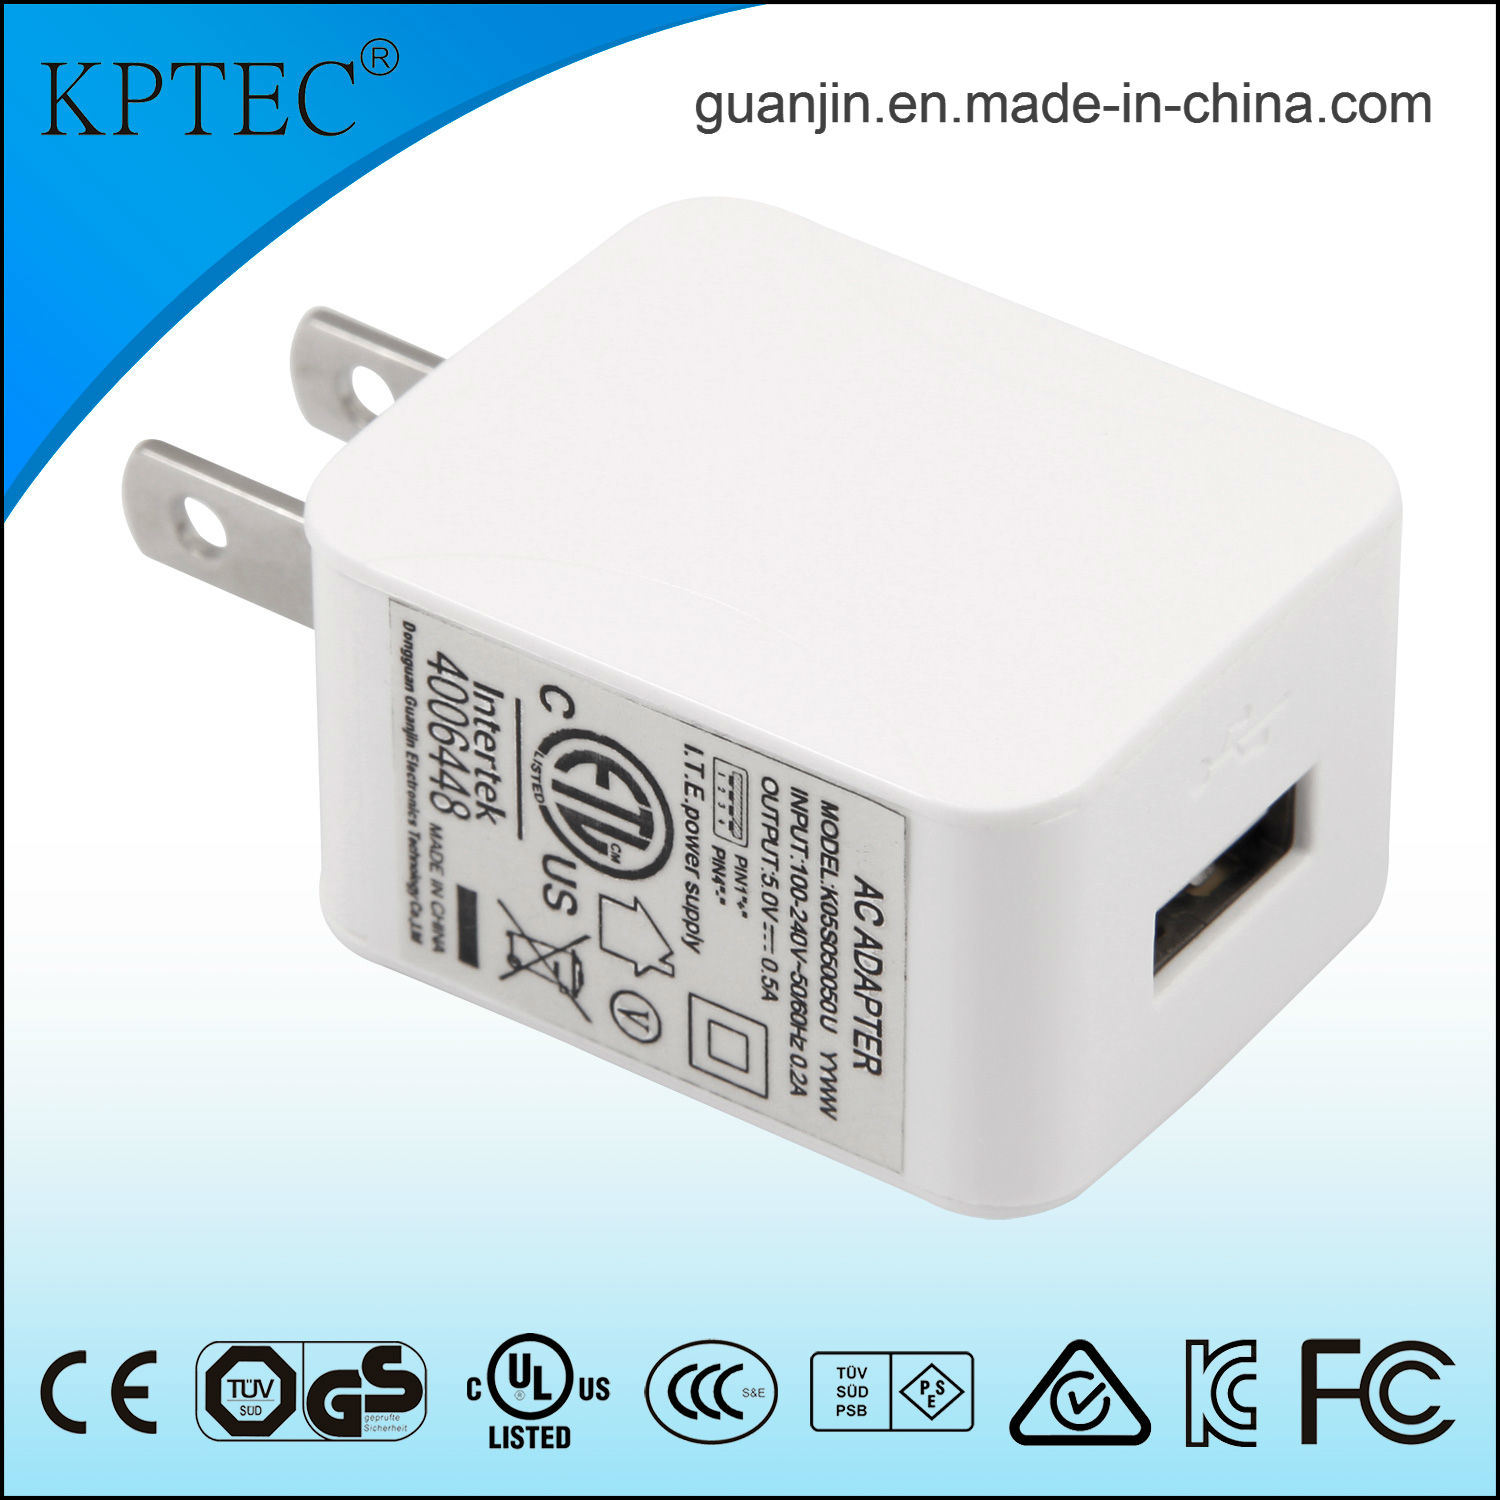 5V 1A Us Plug AC Adapter with ETL and UL Certificcate